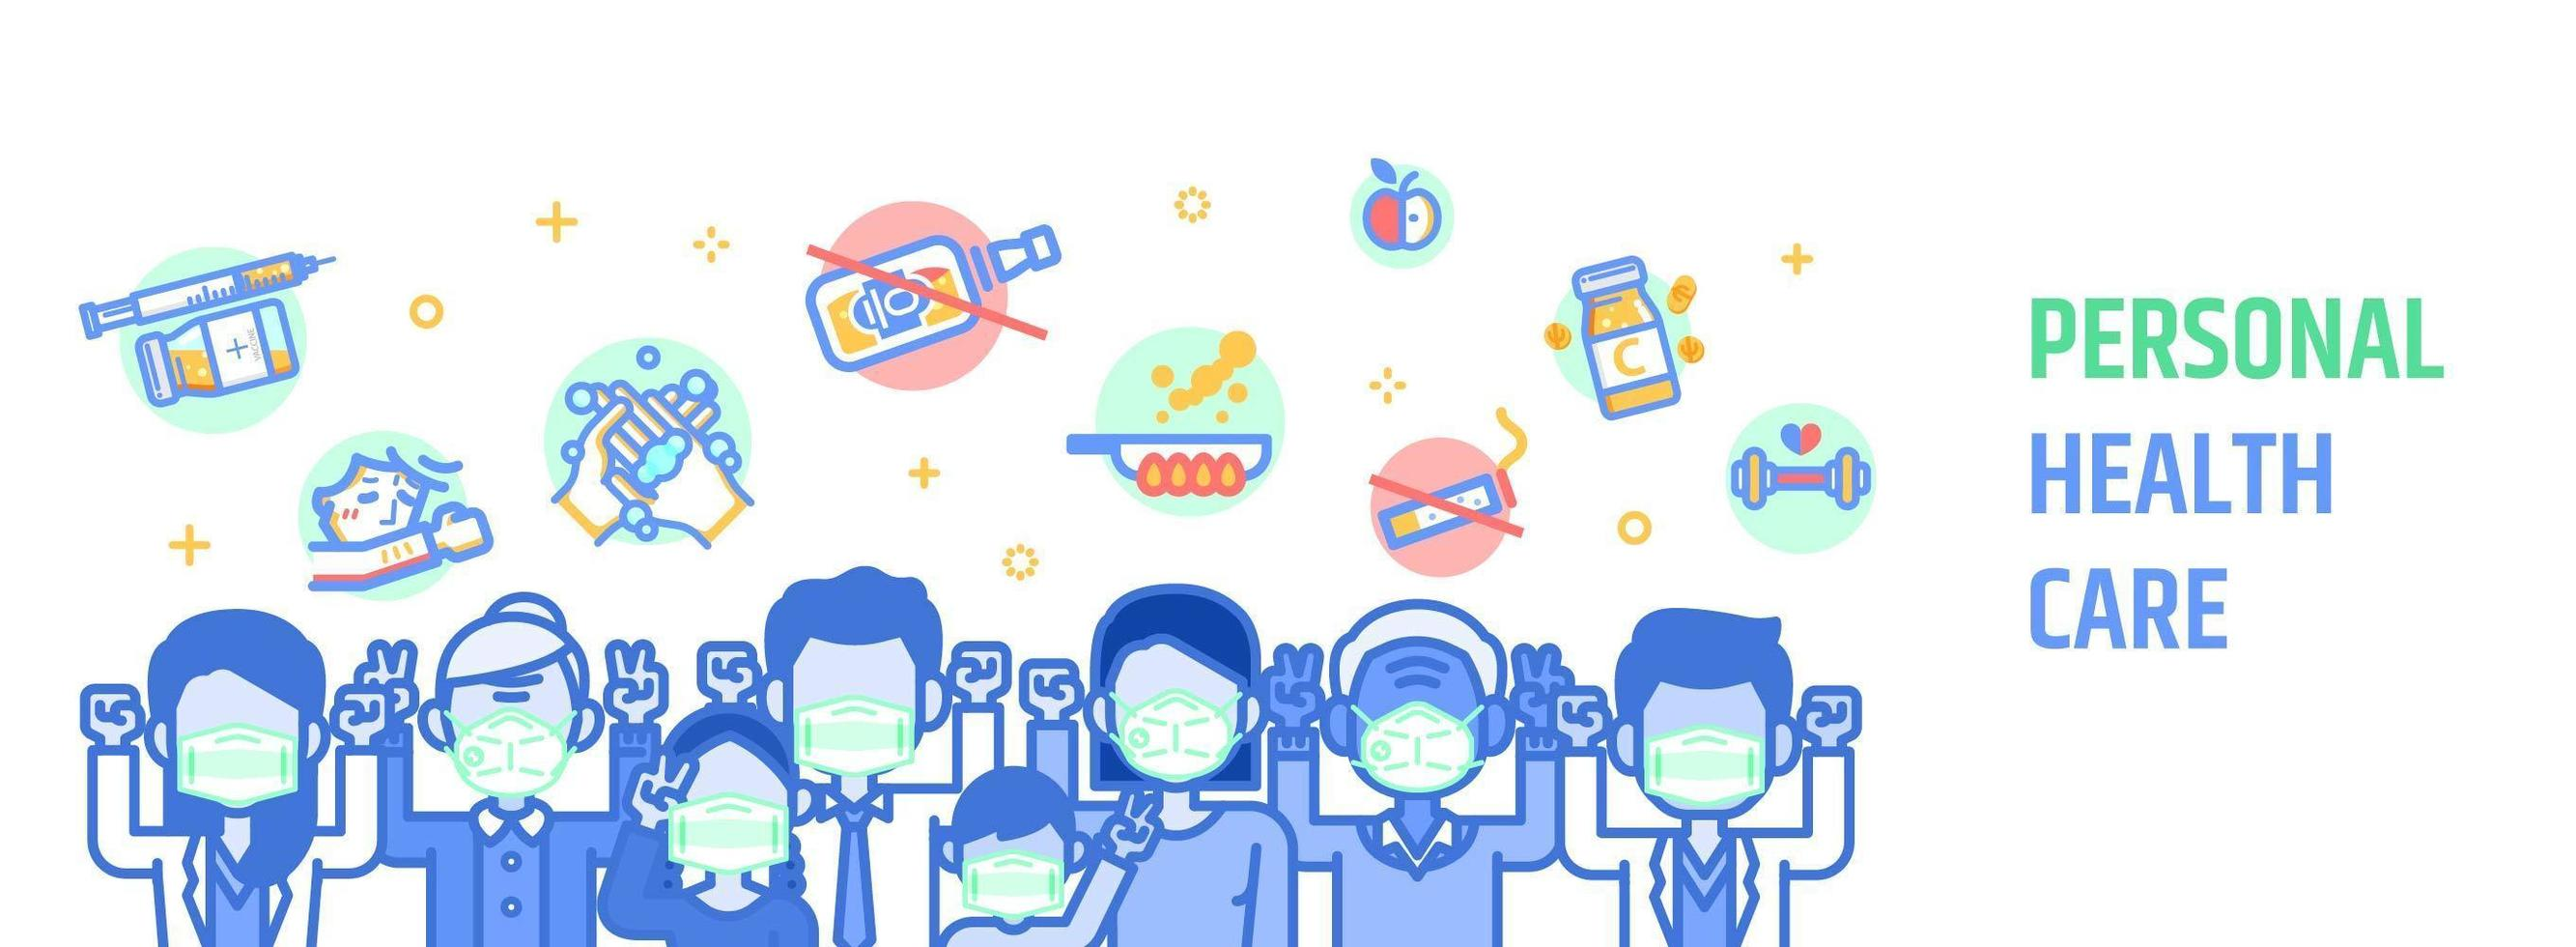 Health Care Banner With People Wearing Medical Masks Download Free Vectors Clipart Graphics Vector Art